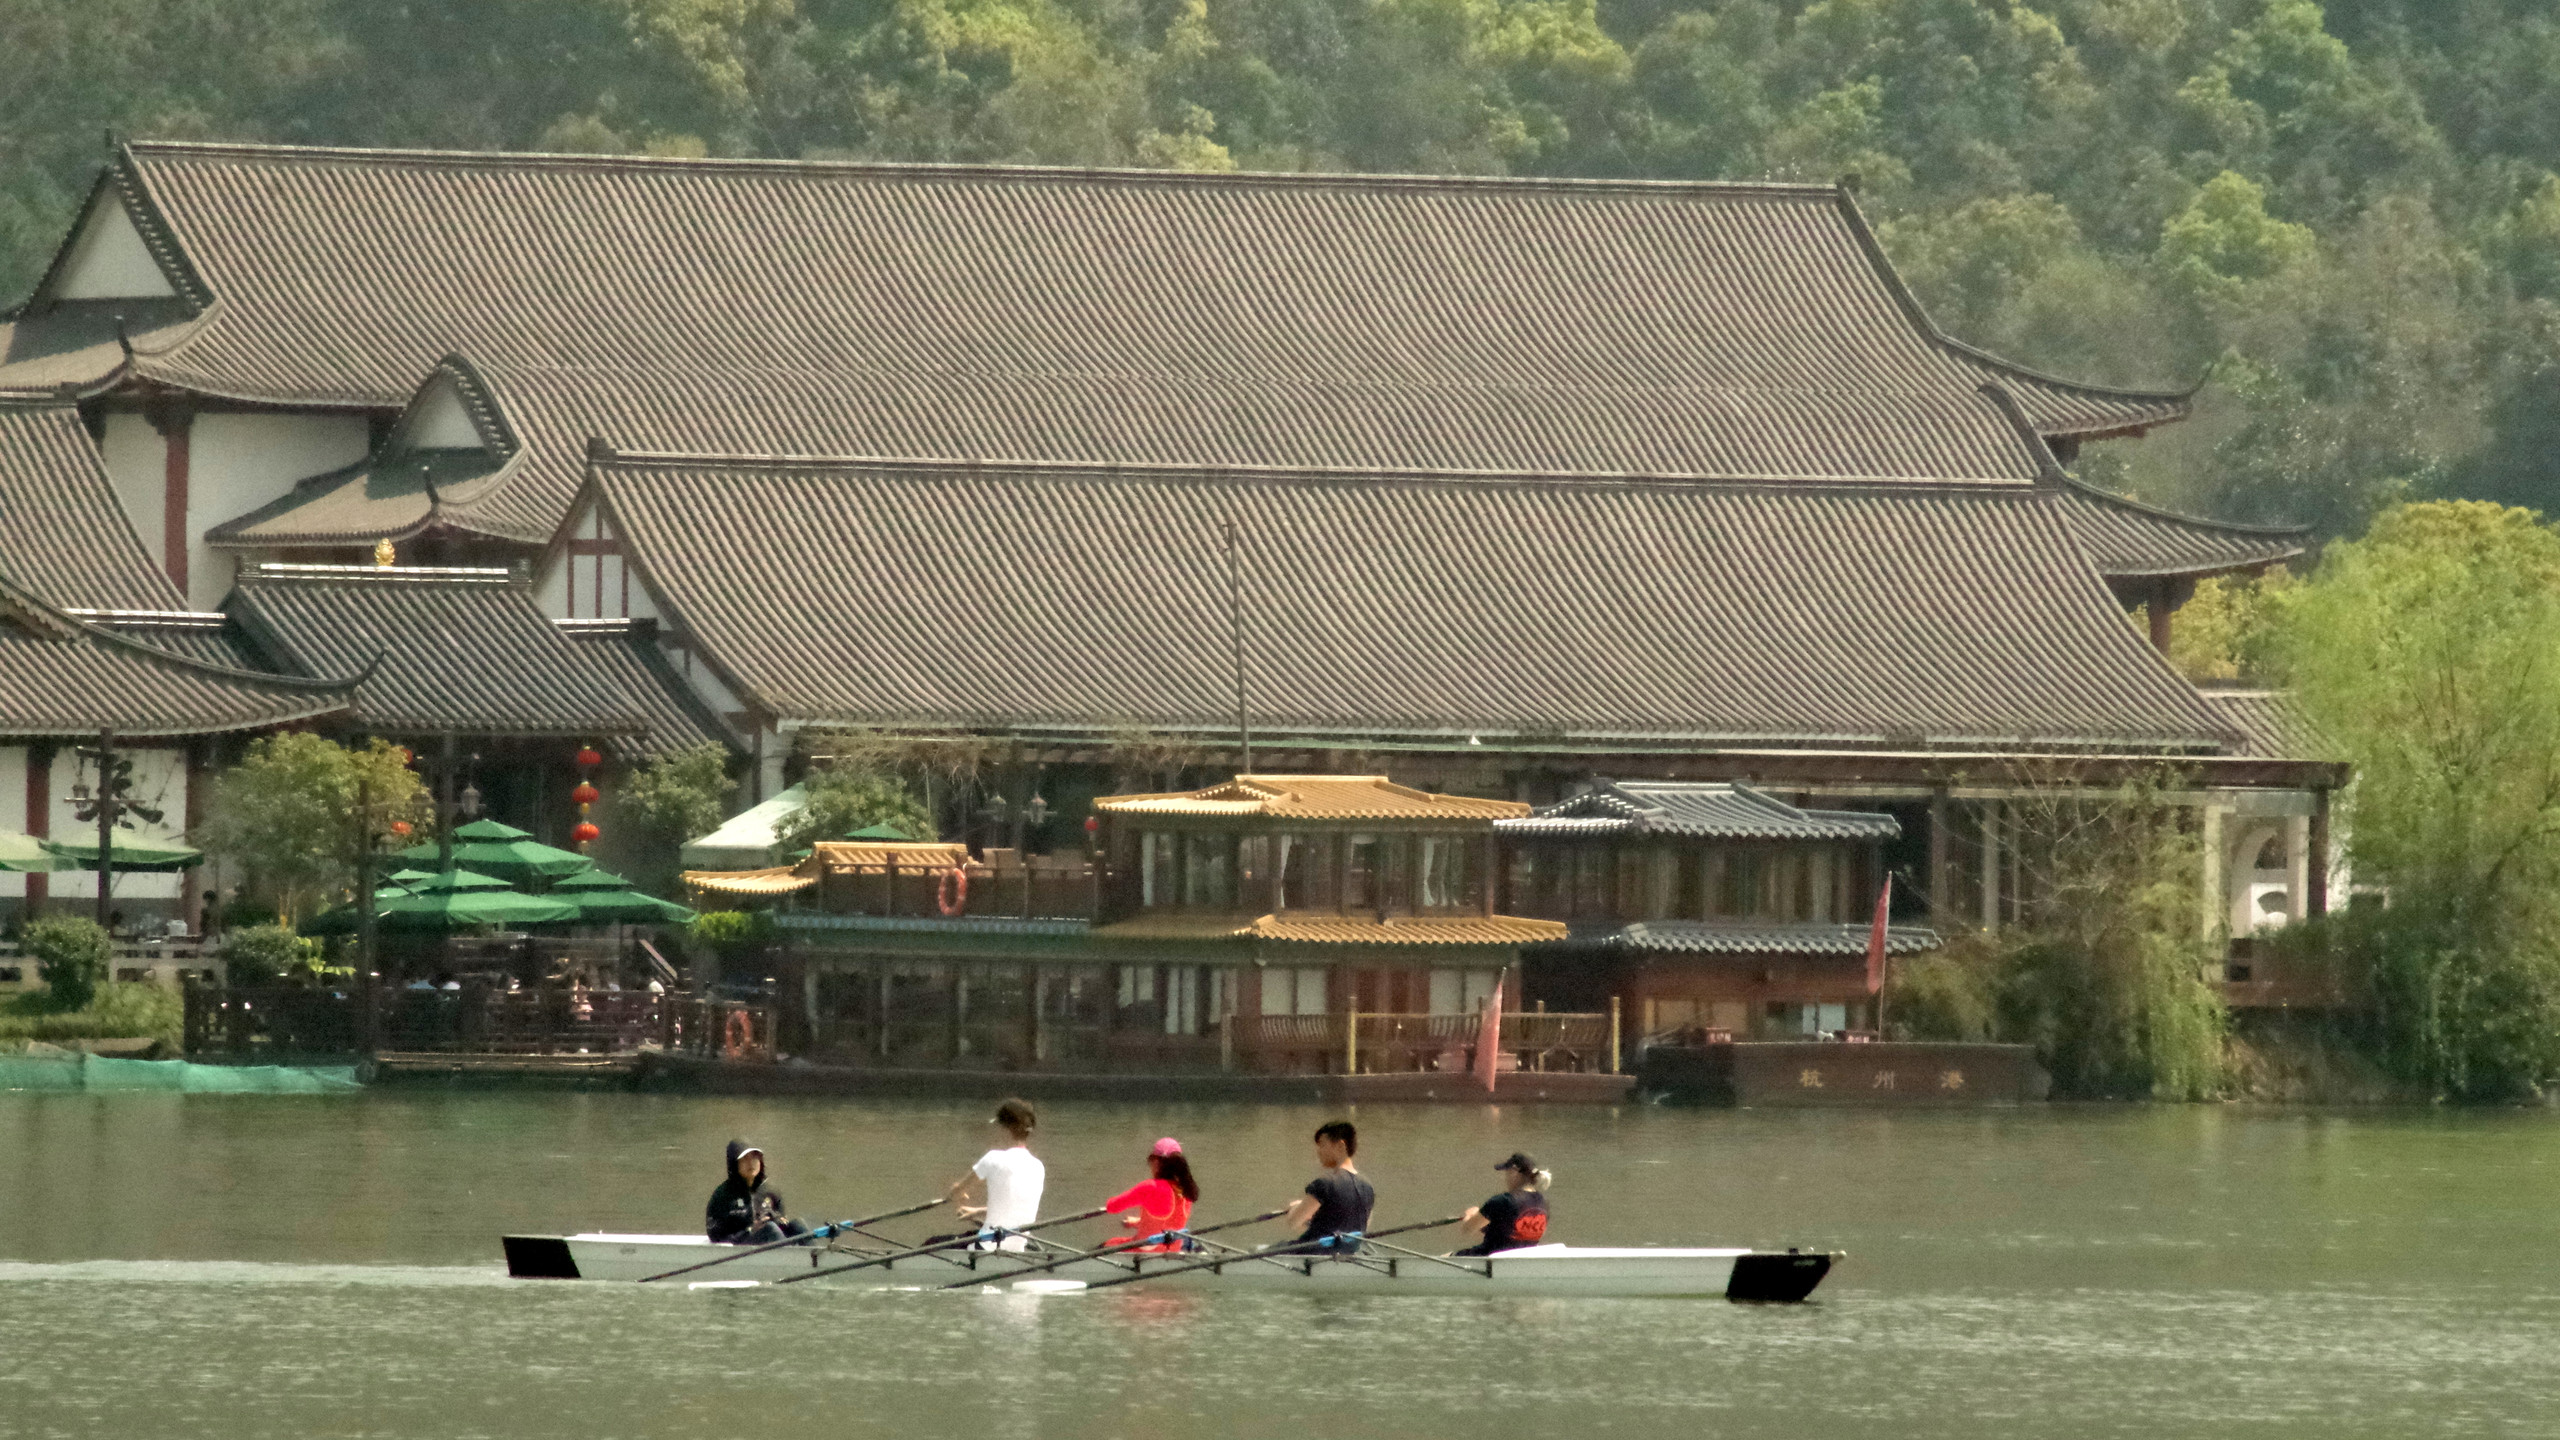 The whole lake was surrounded by scenic areas, sculpted gardens, pagodas new and old.